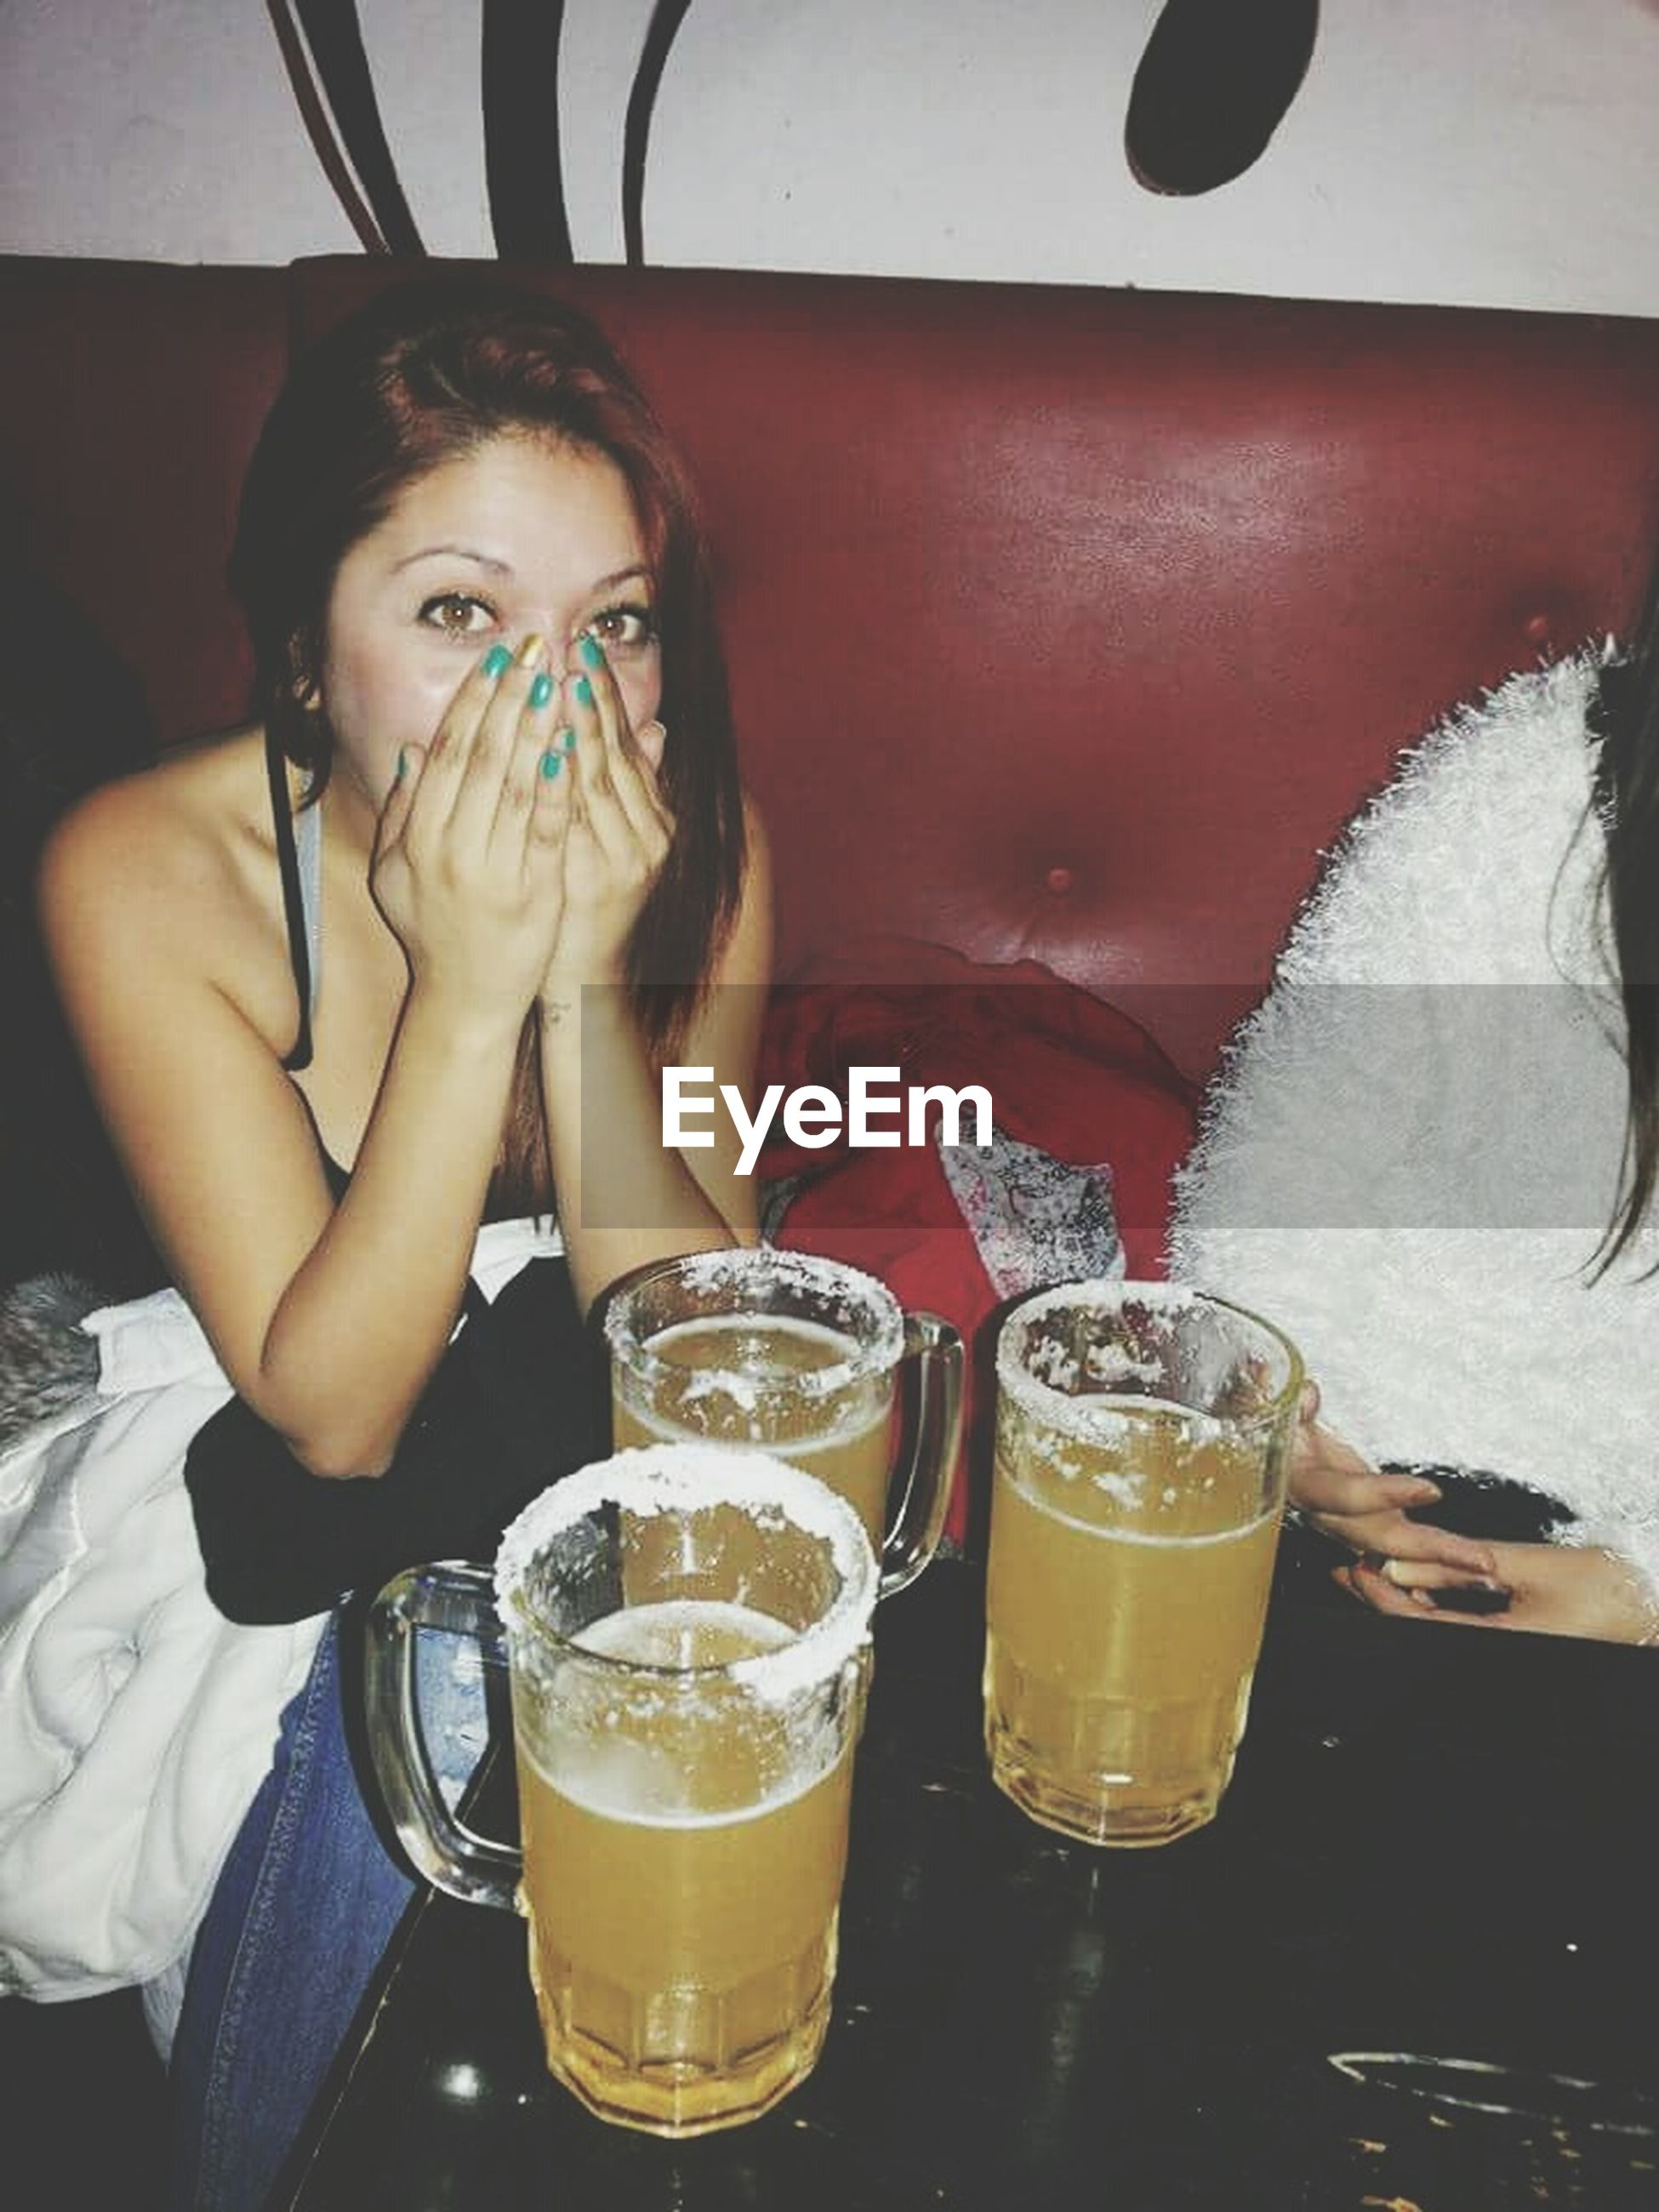 drink, food and drink, real people, refreshment, drinking glass, drinking, one person, alcohol, sitting, table, frothy drink, indoors, leisure activity, drinking straw, lifestyles, eyeglasses, young women, freshness, young adult, day, human hand, people